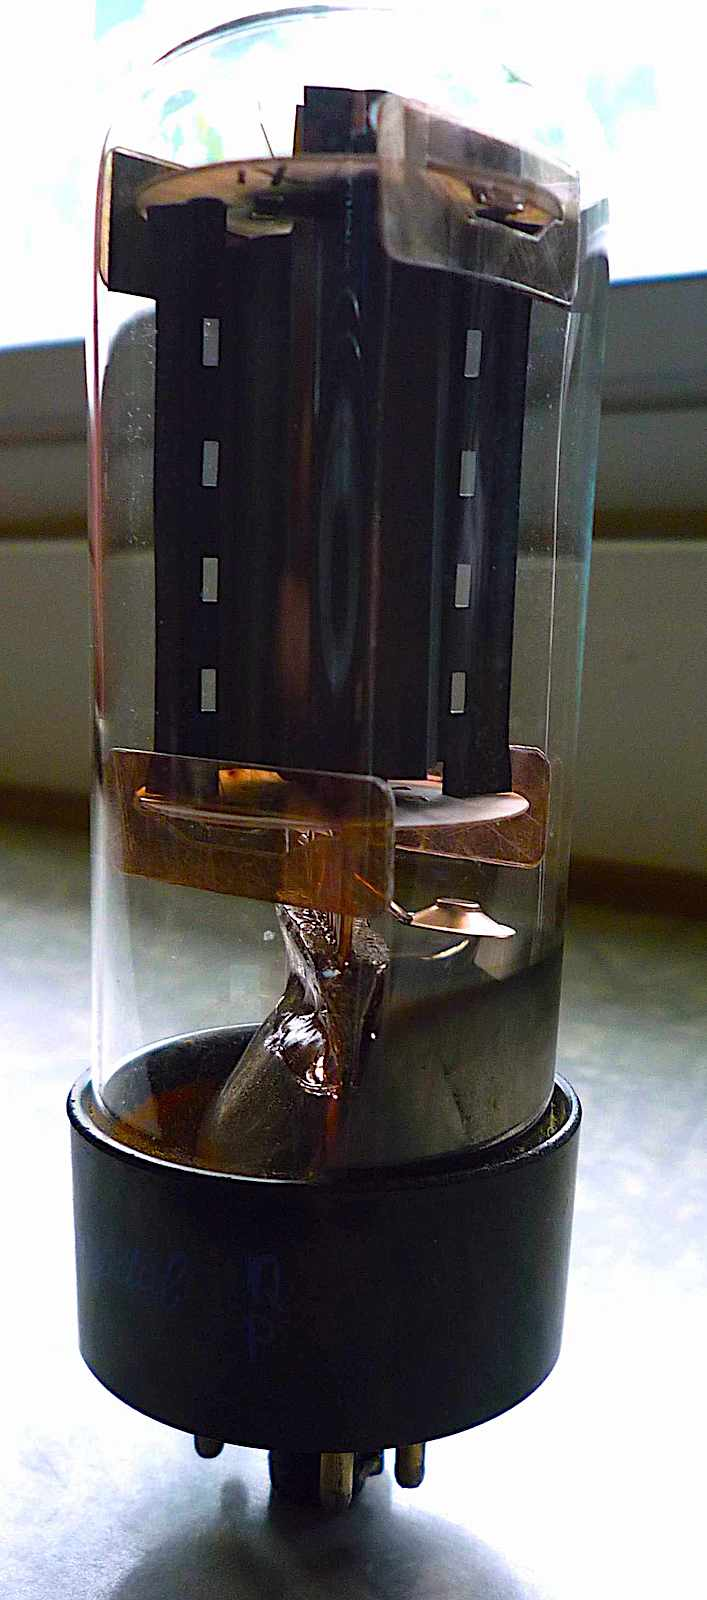 guitar amplifier tube early 1970s, a color photograph